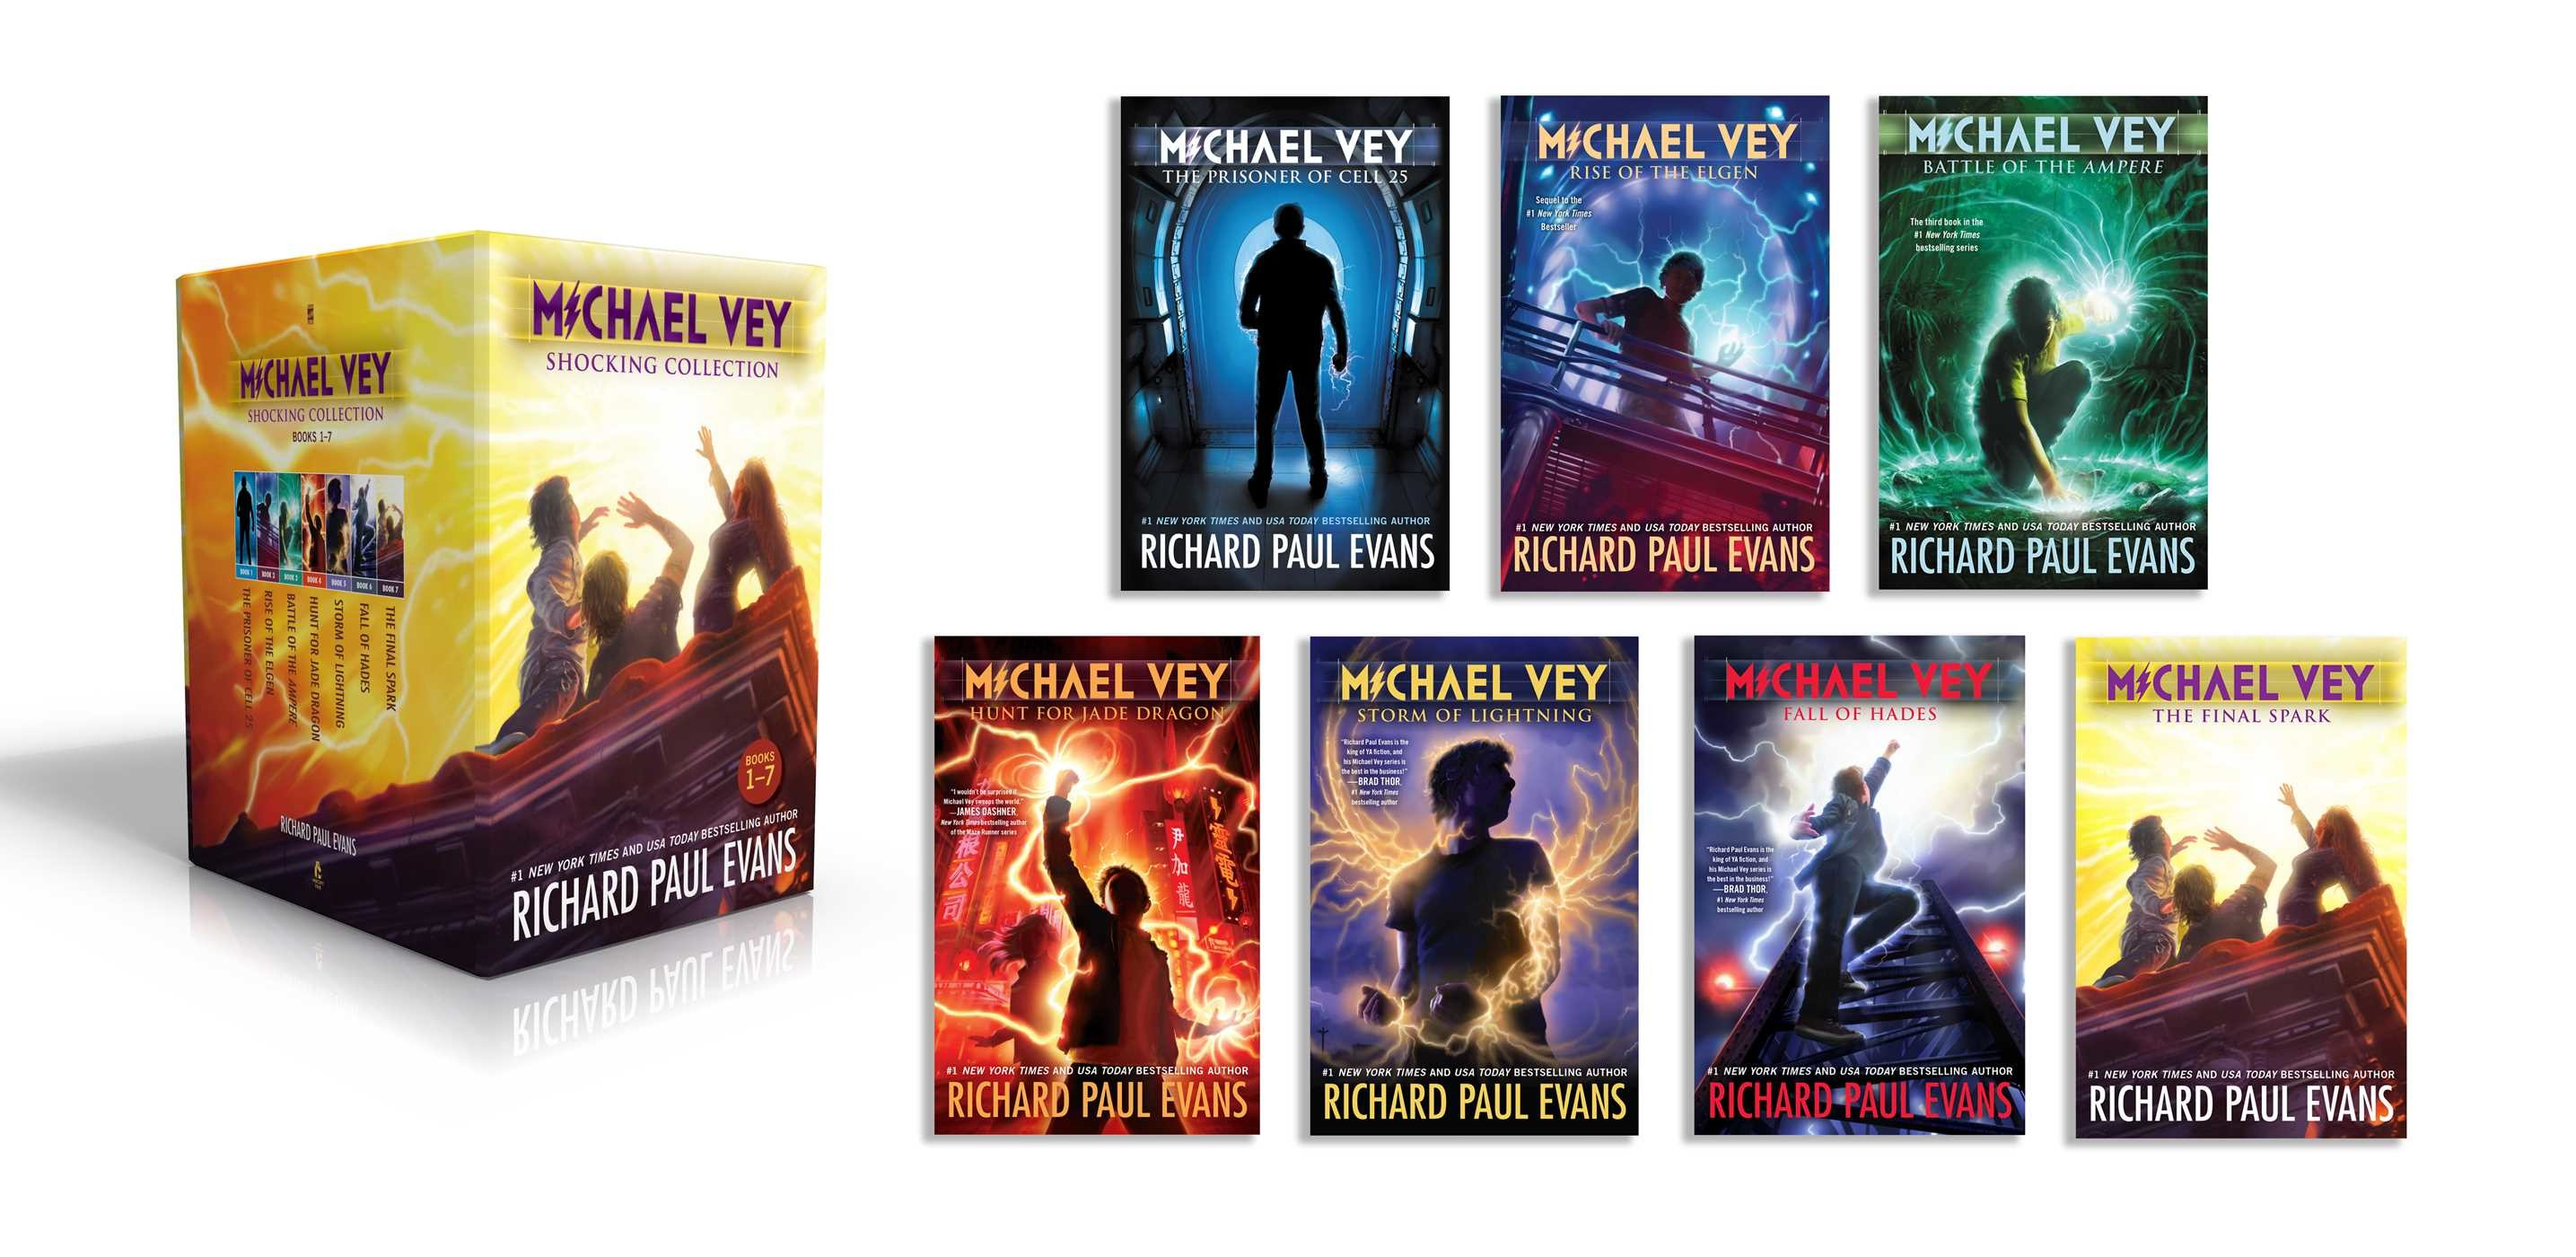 Michael vey shocking collection books 1 7 9781534400078.in01